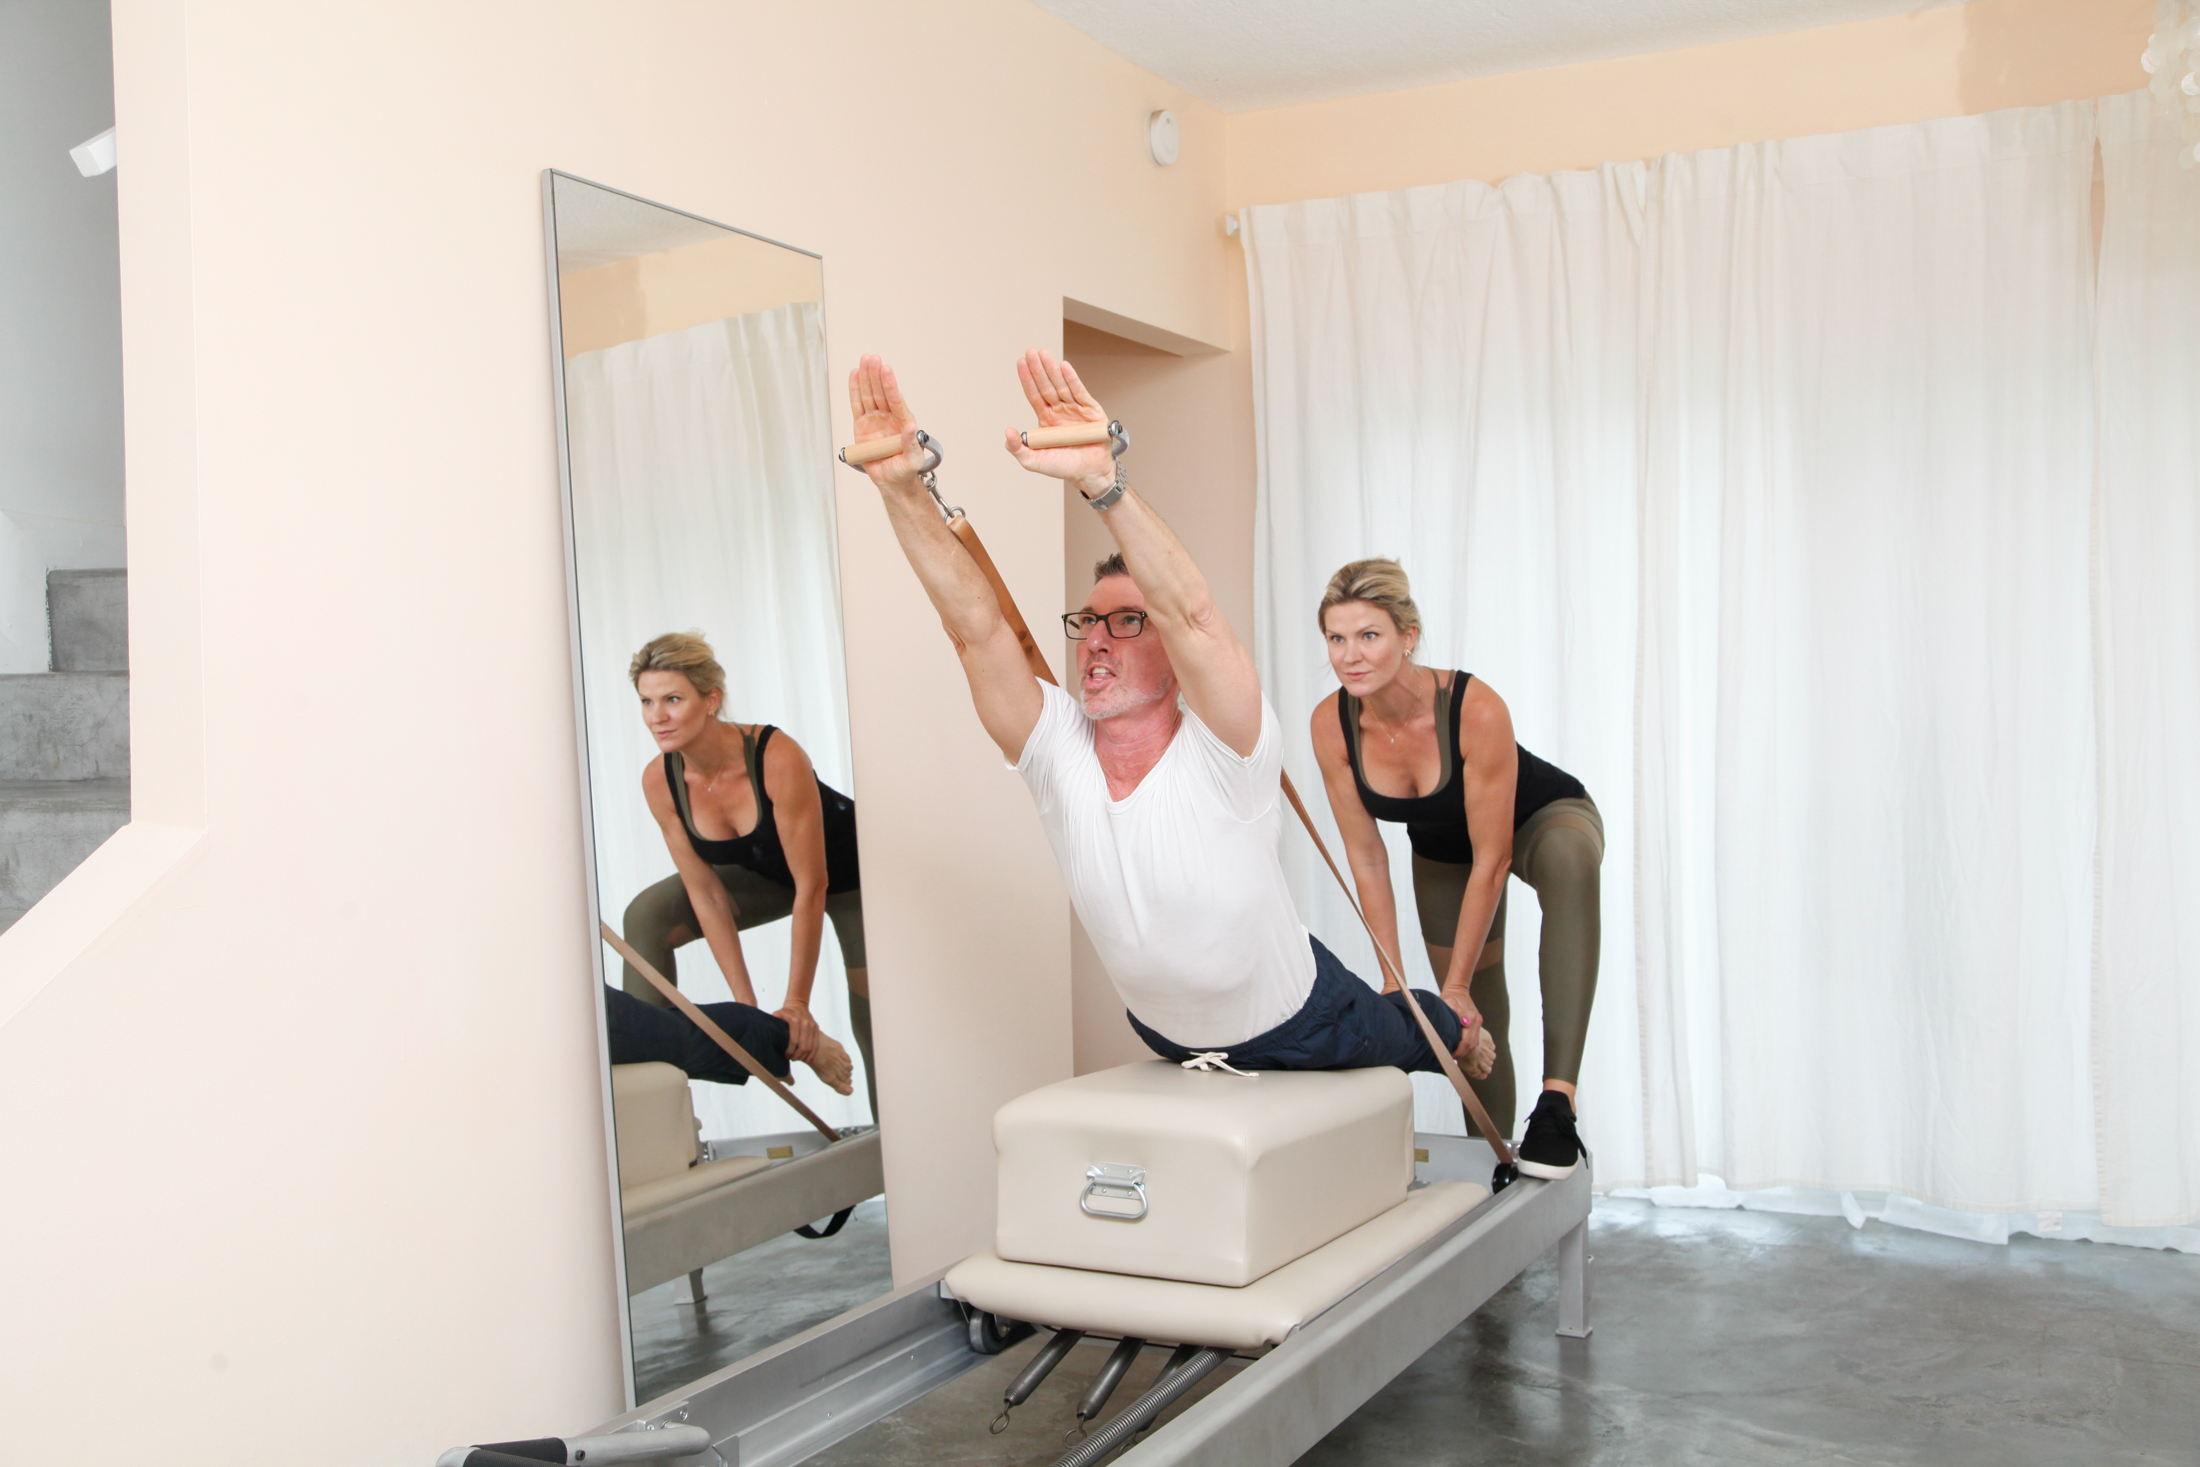 breast stroke Pilates Pilatay Reformer Exercises